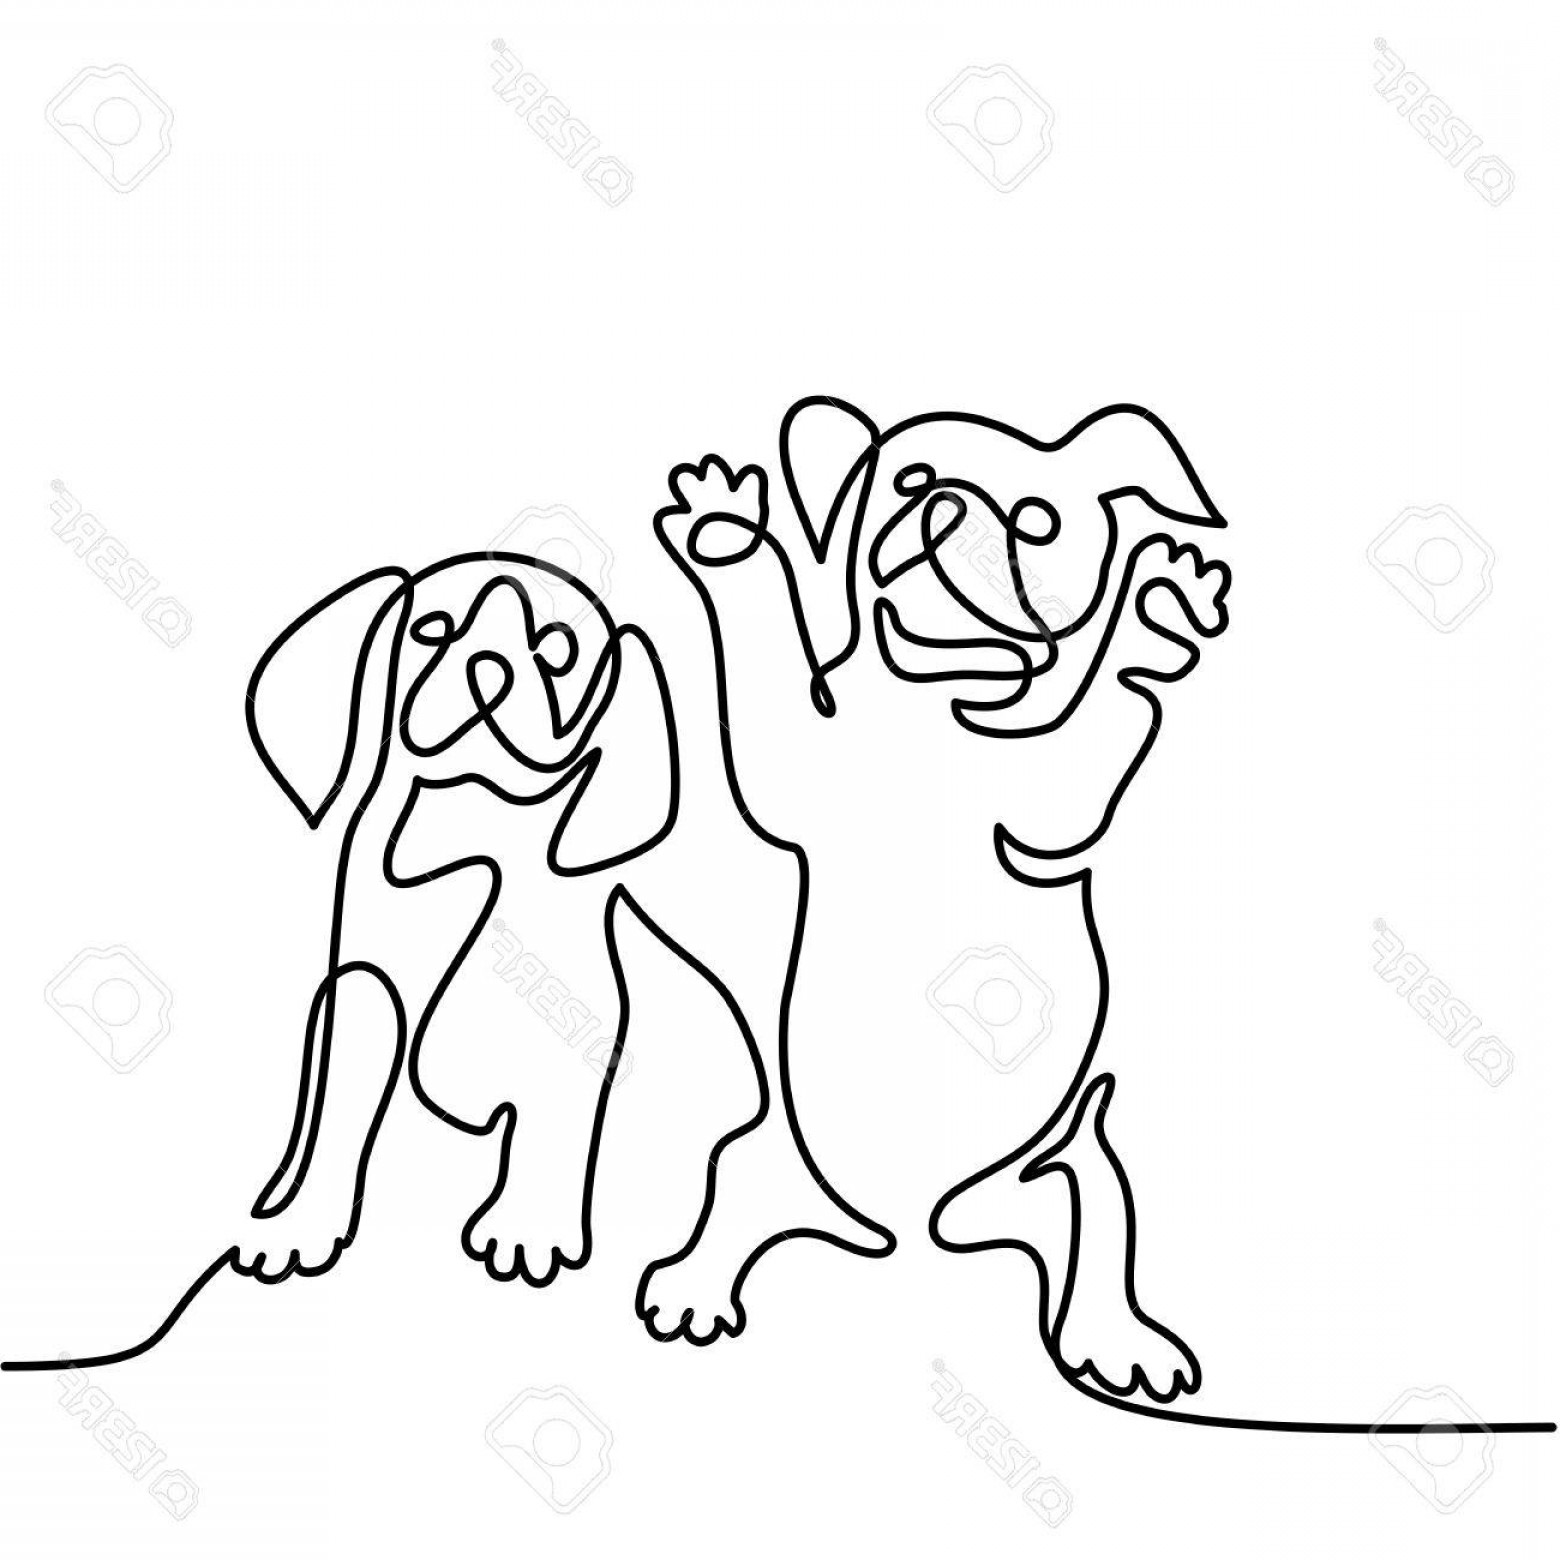 1560x1560 Photostock Vector Continuous Line Drawing Two Puppy Dogs Sitting